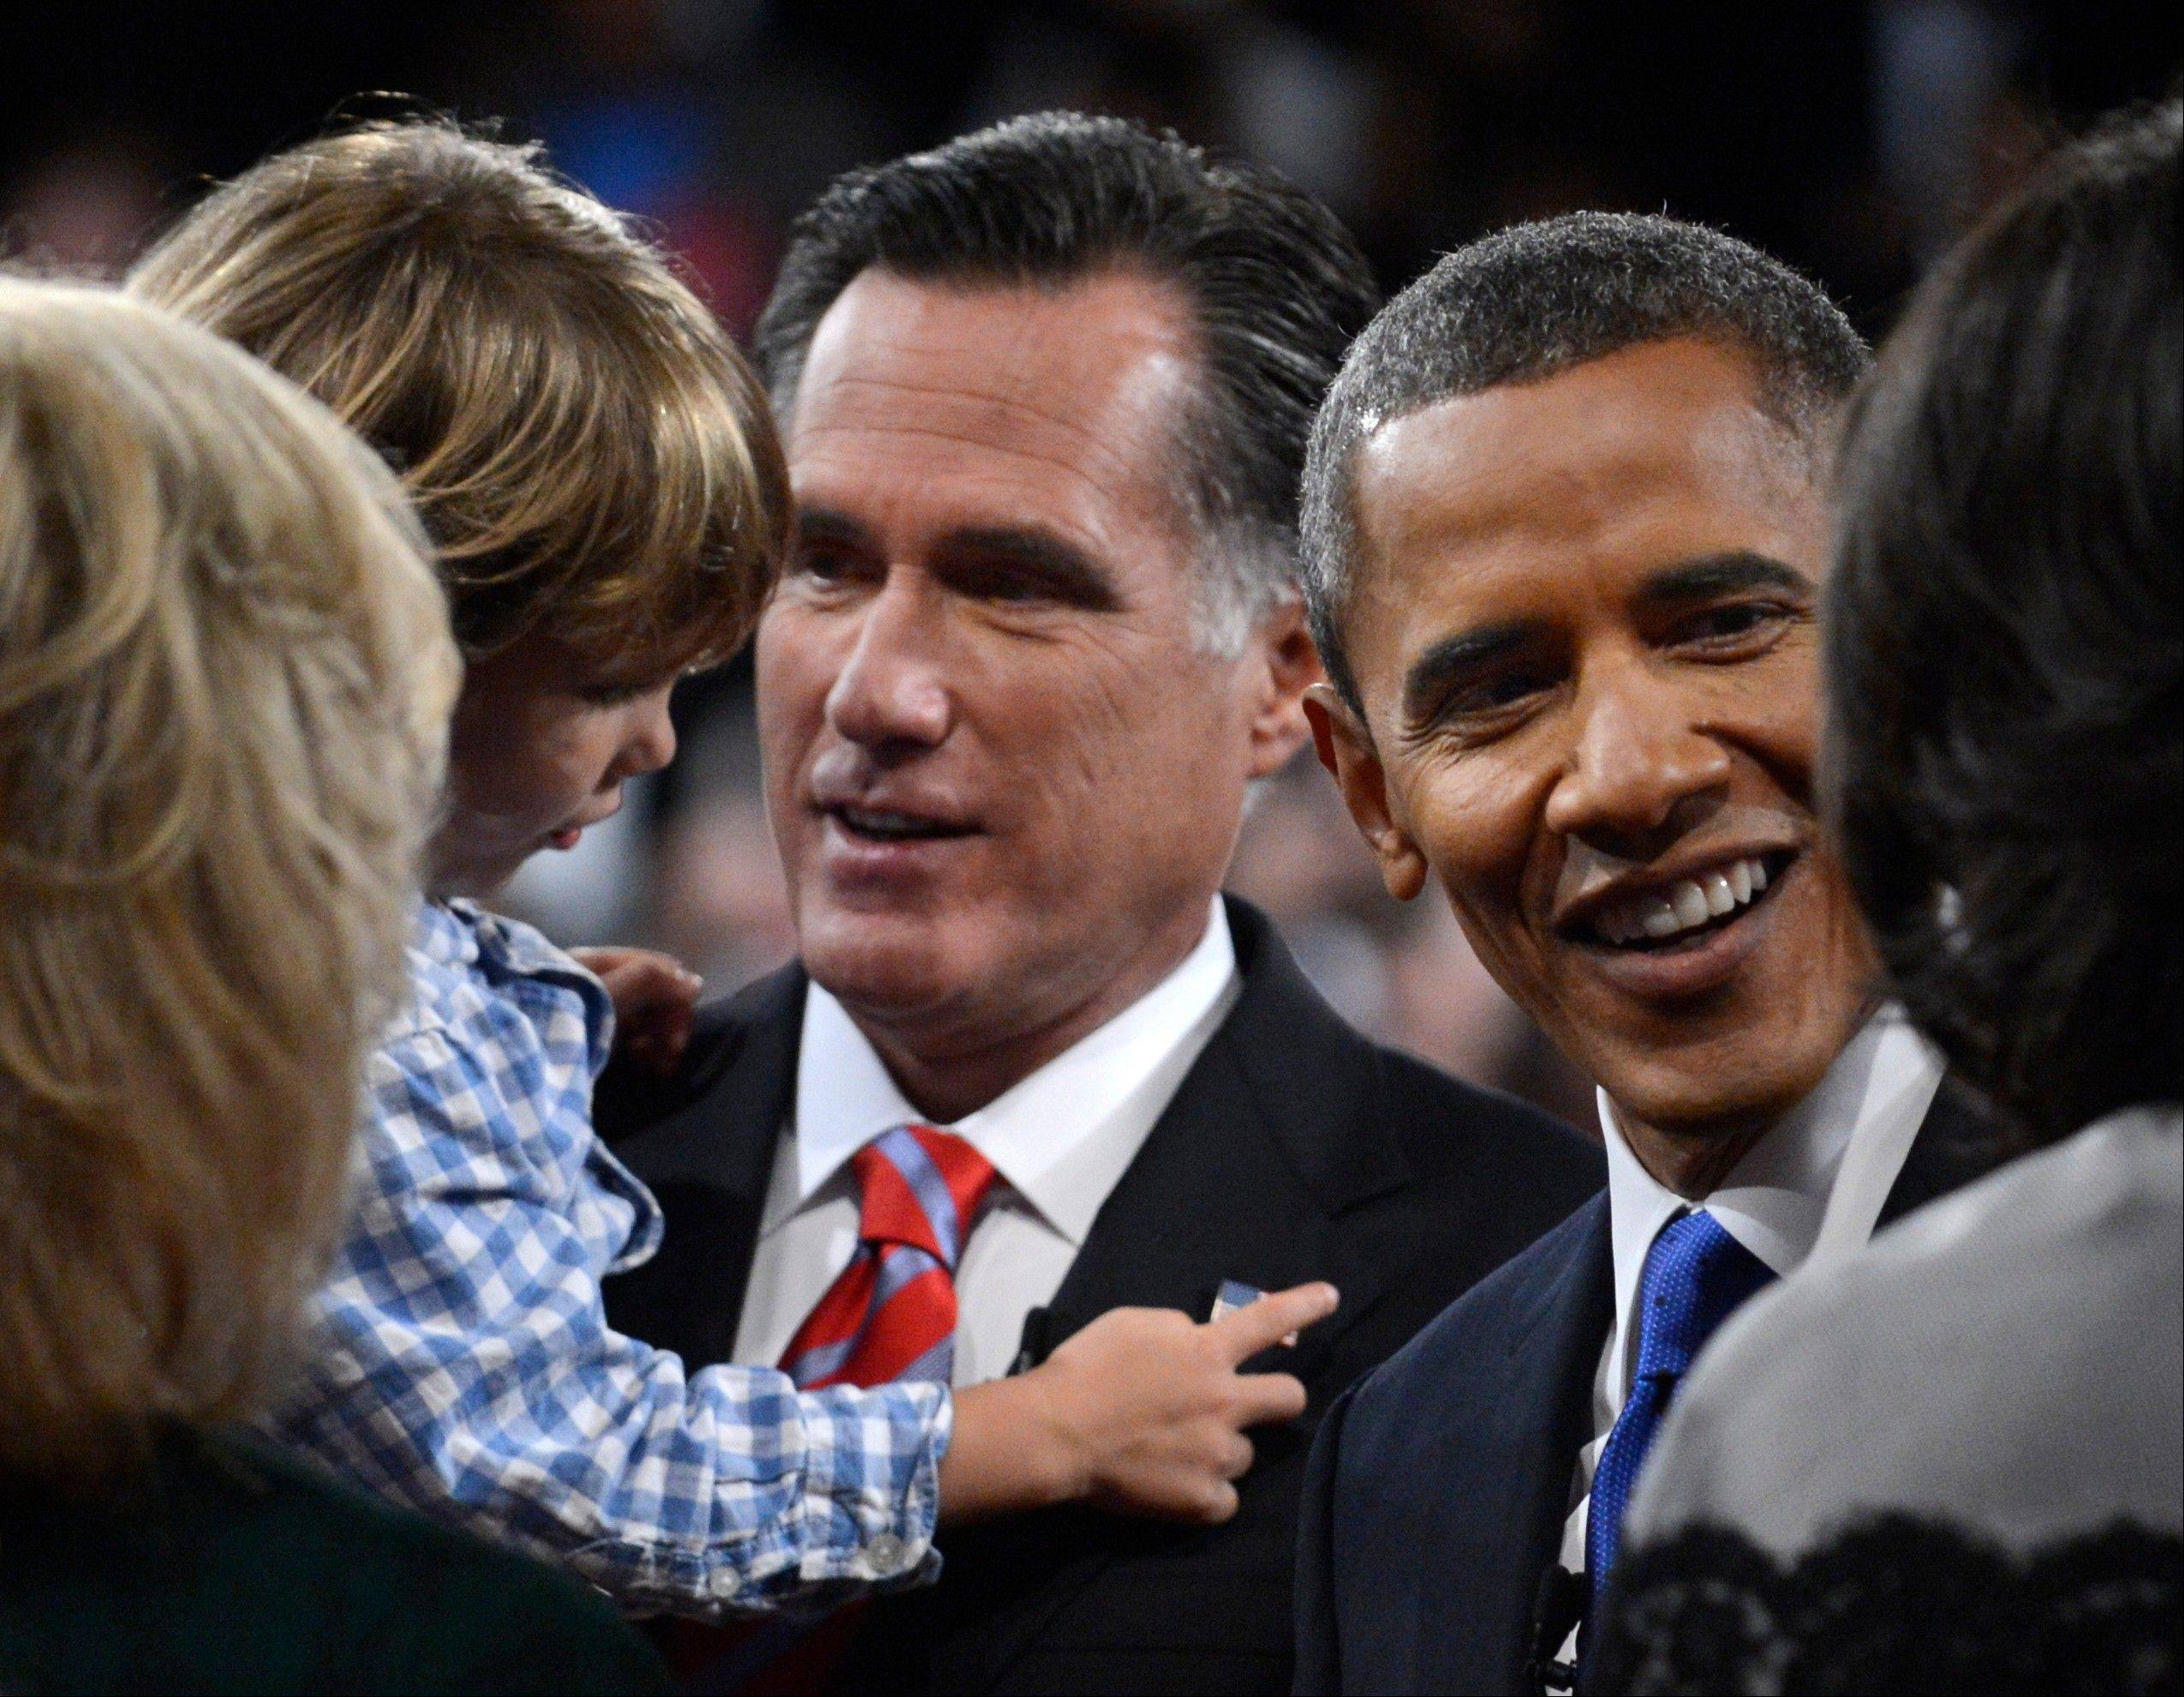 President Barack Obama and Republican presidential nominee Mitt Romney meet family members after the third presidential debate at Lynn University Monday in Boca Raton, Fla.